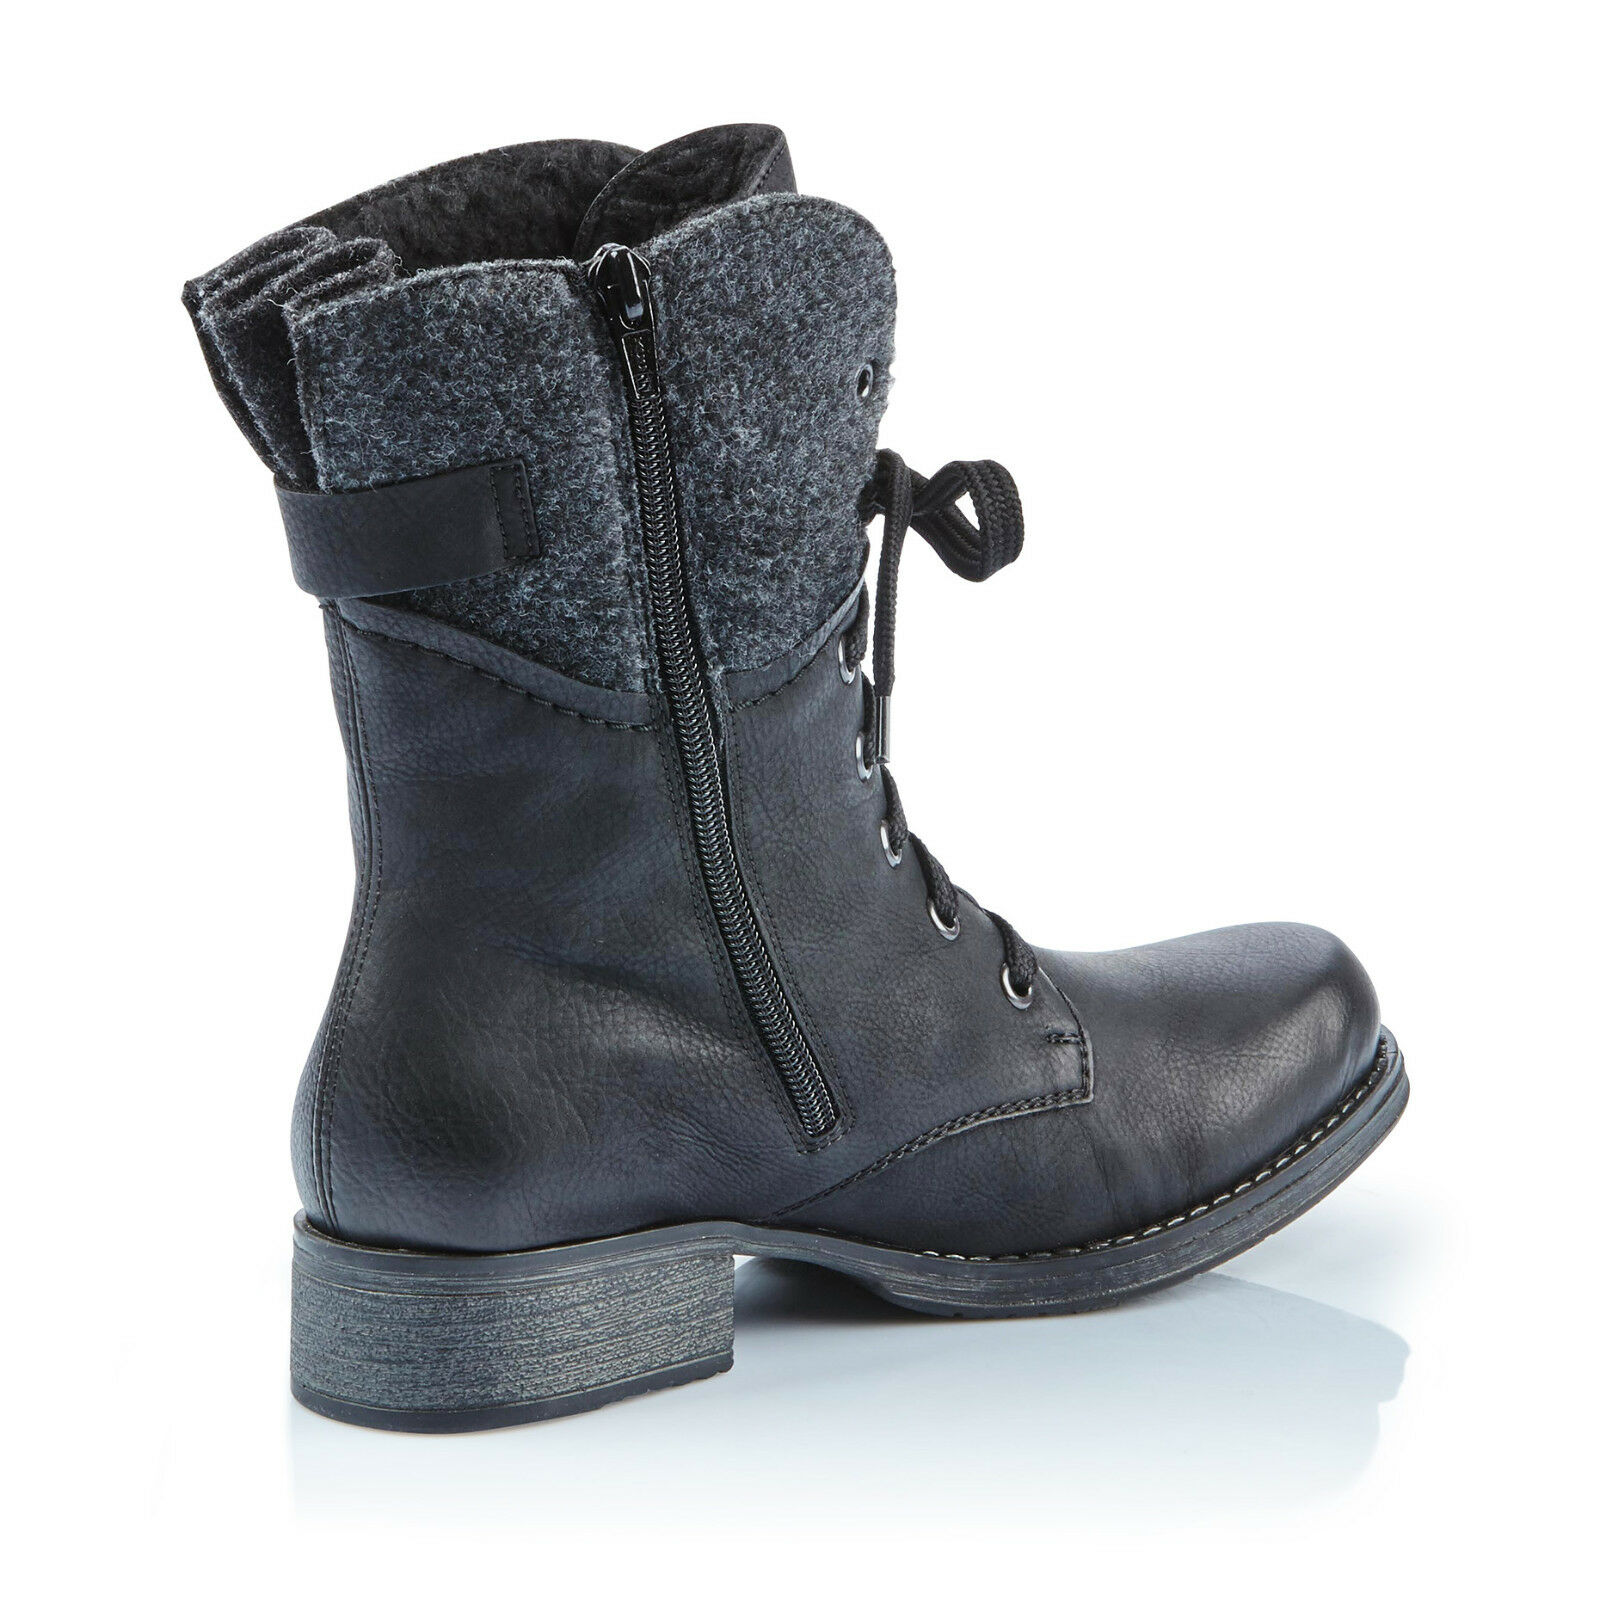 Rieker Women's Boots Ankle Boots Laced Boots Black Black Black y9704 NEW a9422e